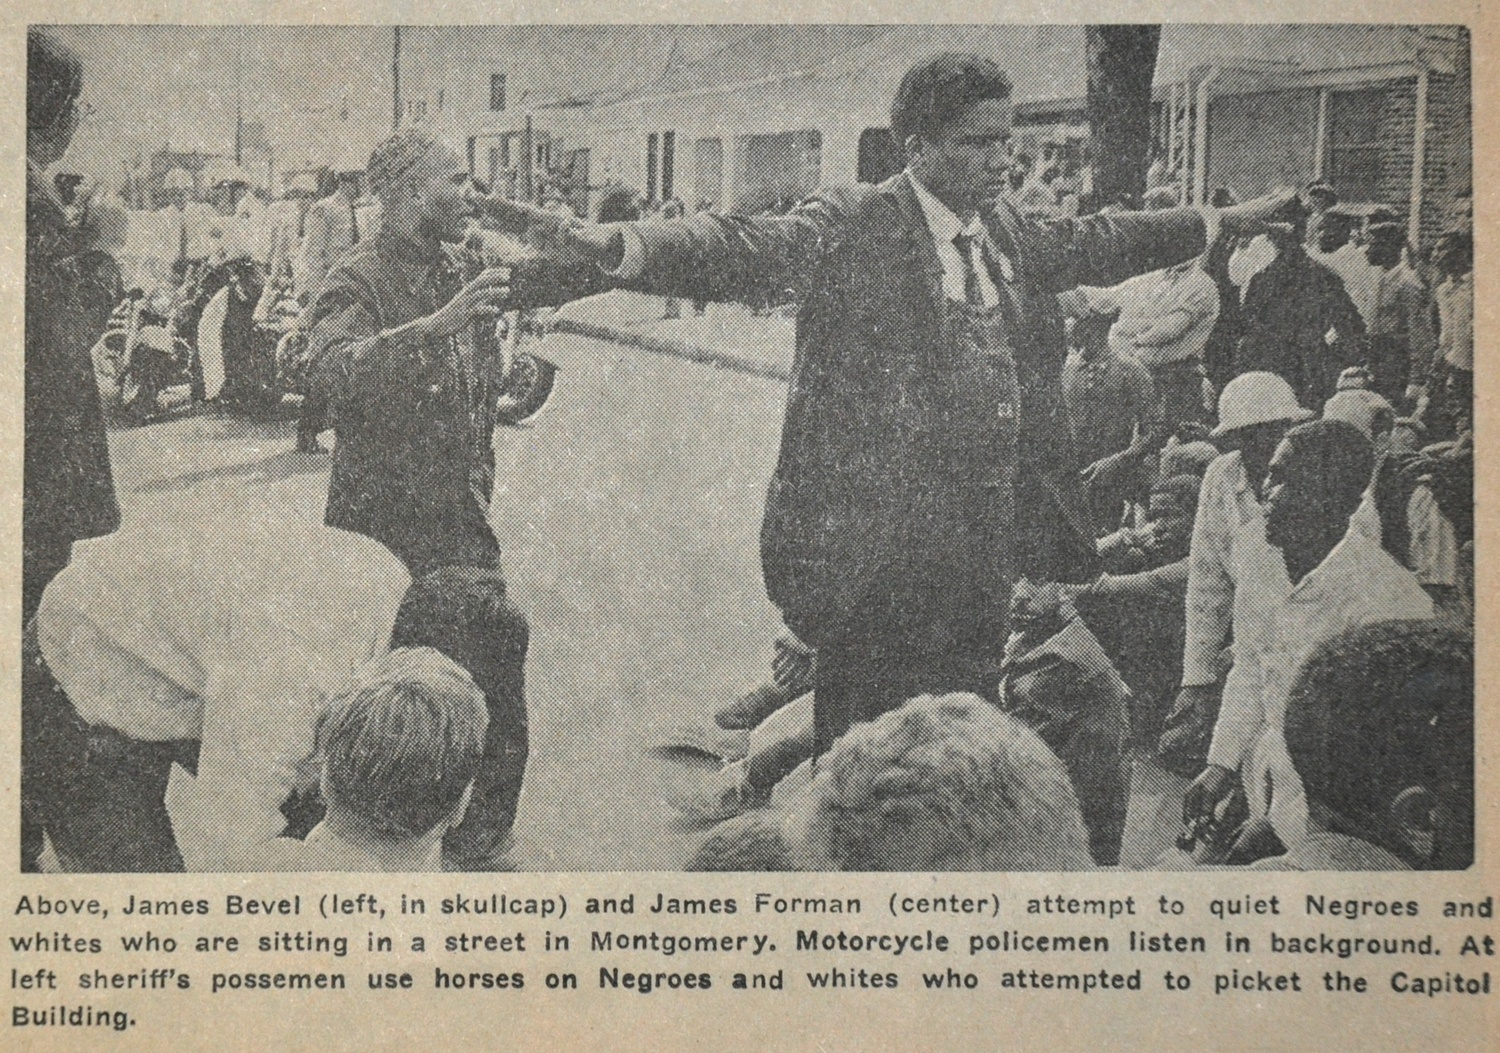 Above, James Bevel (left, in skullcap) and James Forman (center) attempted to calm people sitting in a street in Montgomery, AL. Motorcycle policemen listen in background. At left, sheriff's possemen use horses to interfere in a picket of the Capitol building.